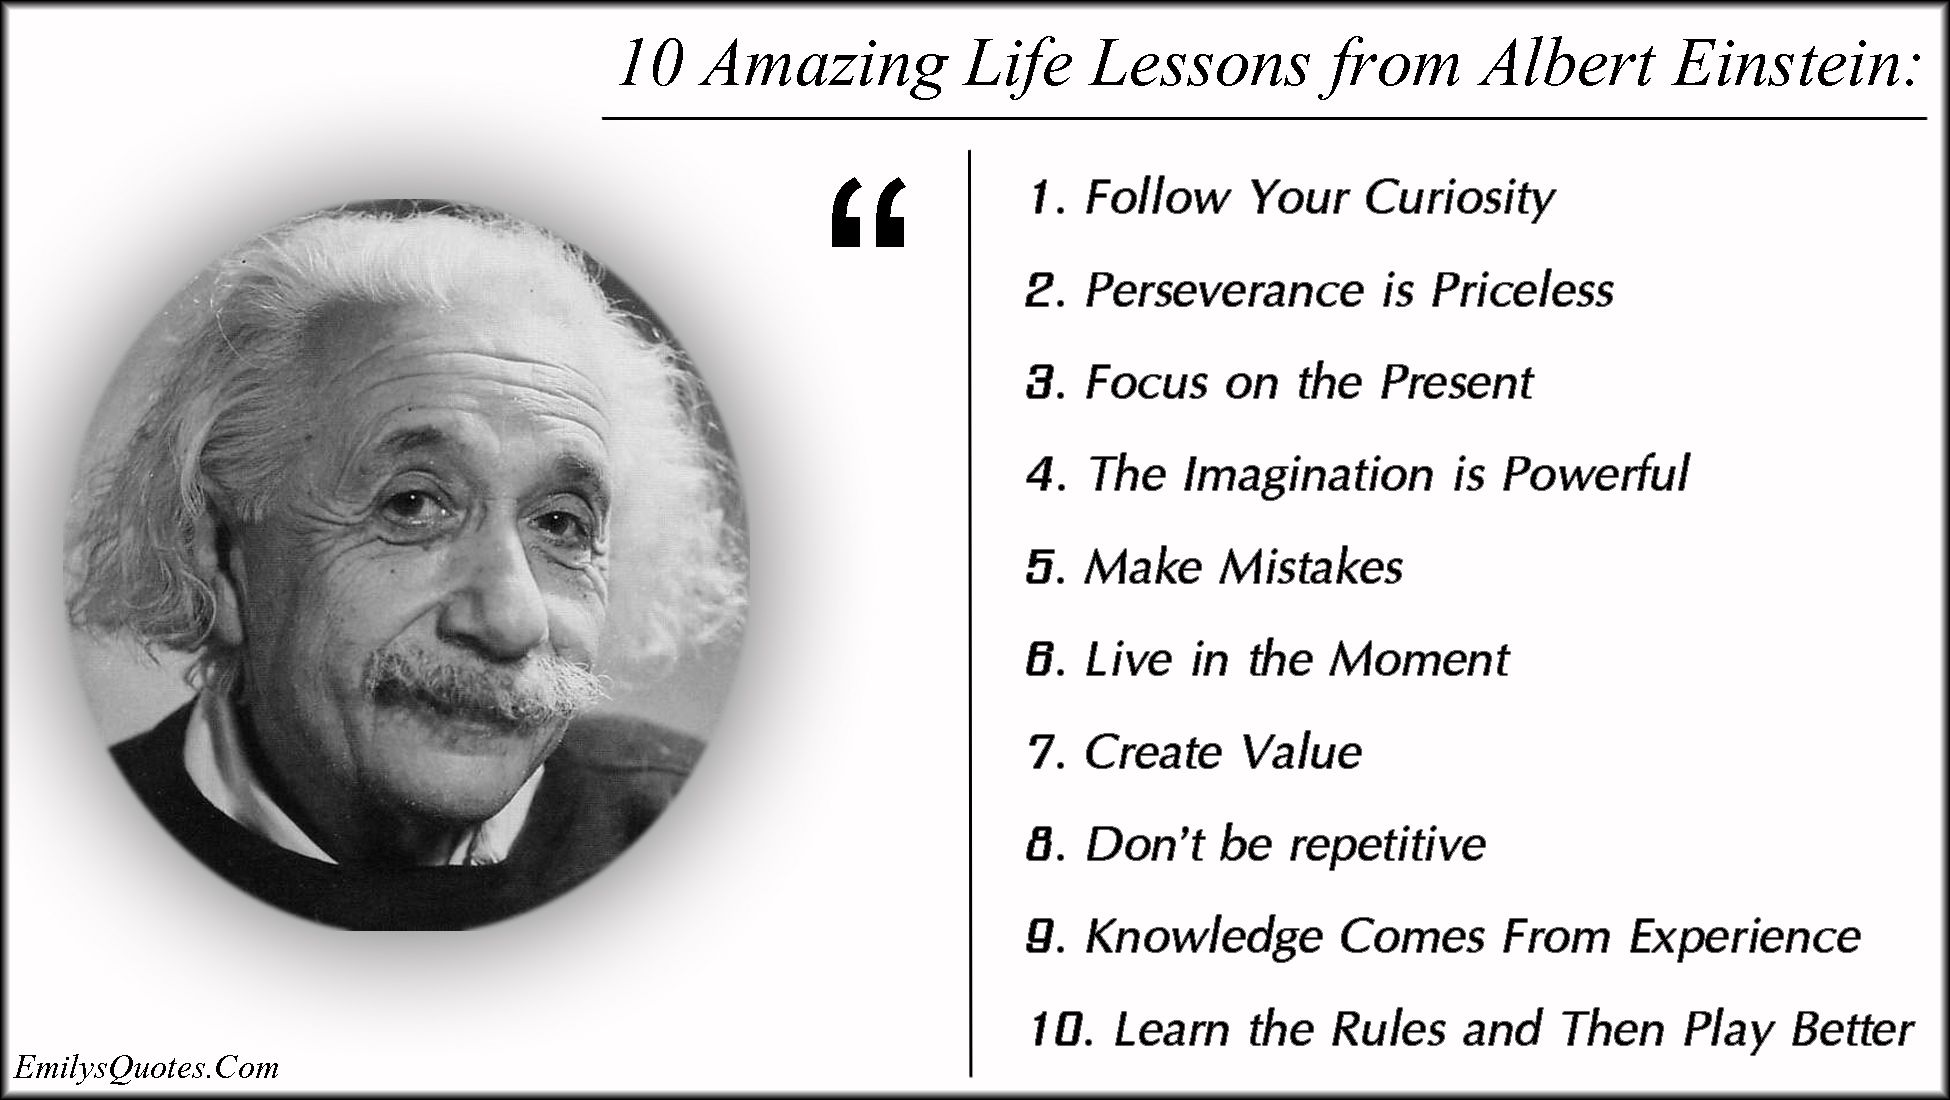 Is it better to have life lessons or a good education?